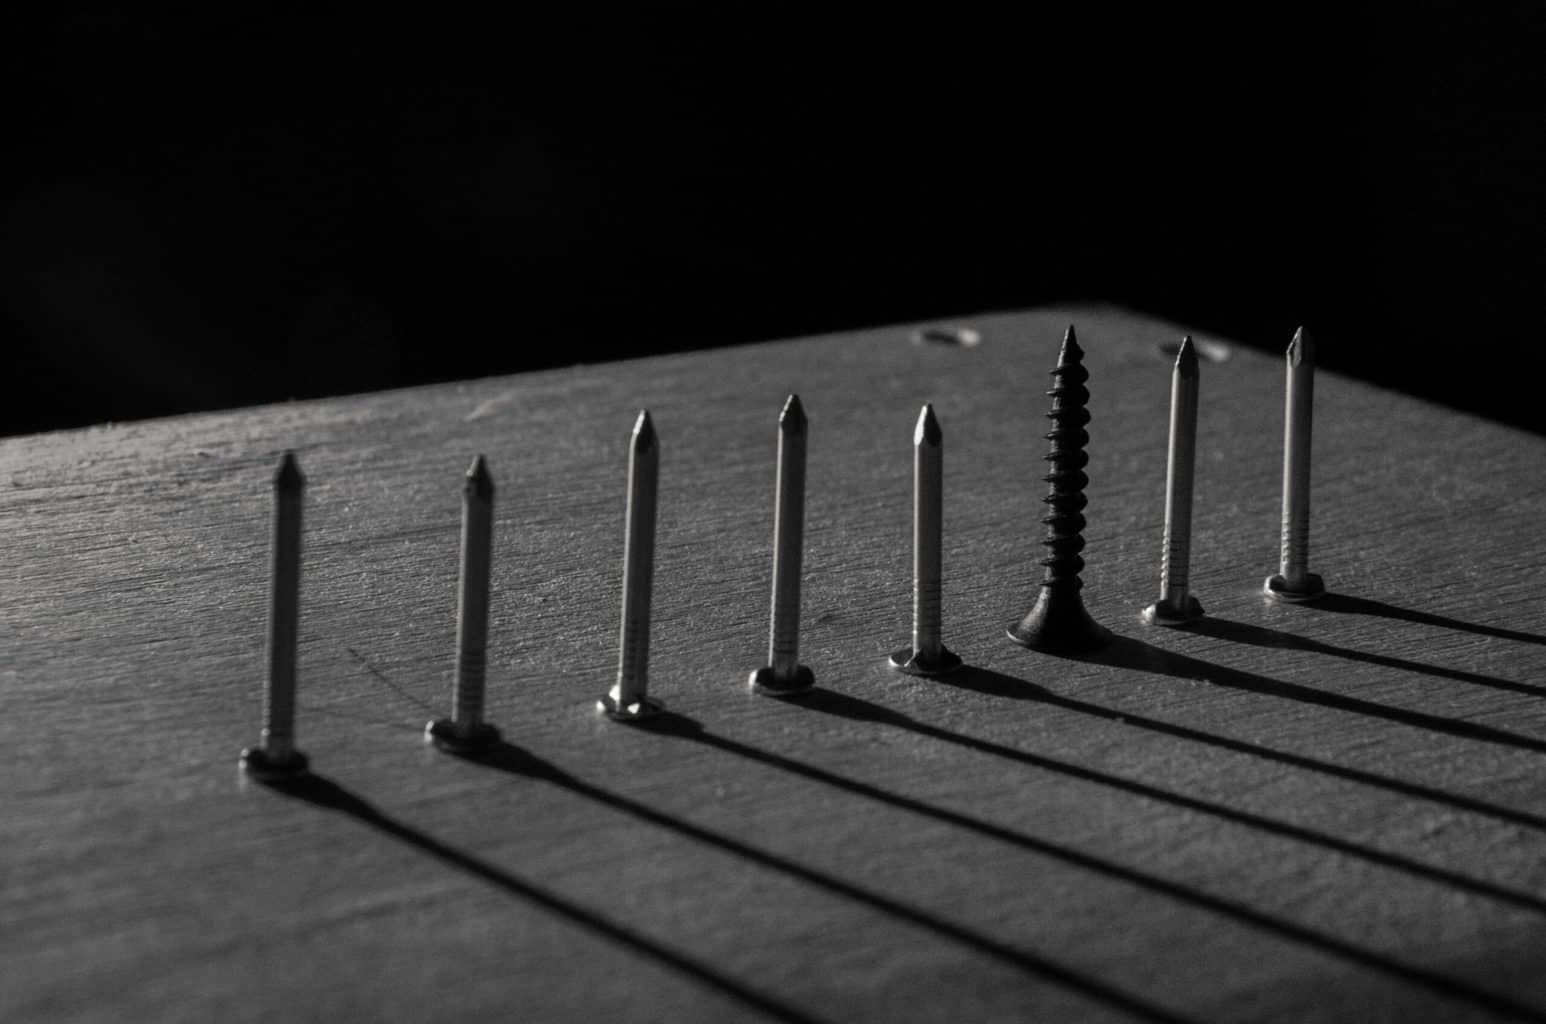 Different types of screws on display